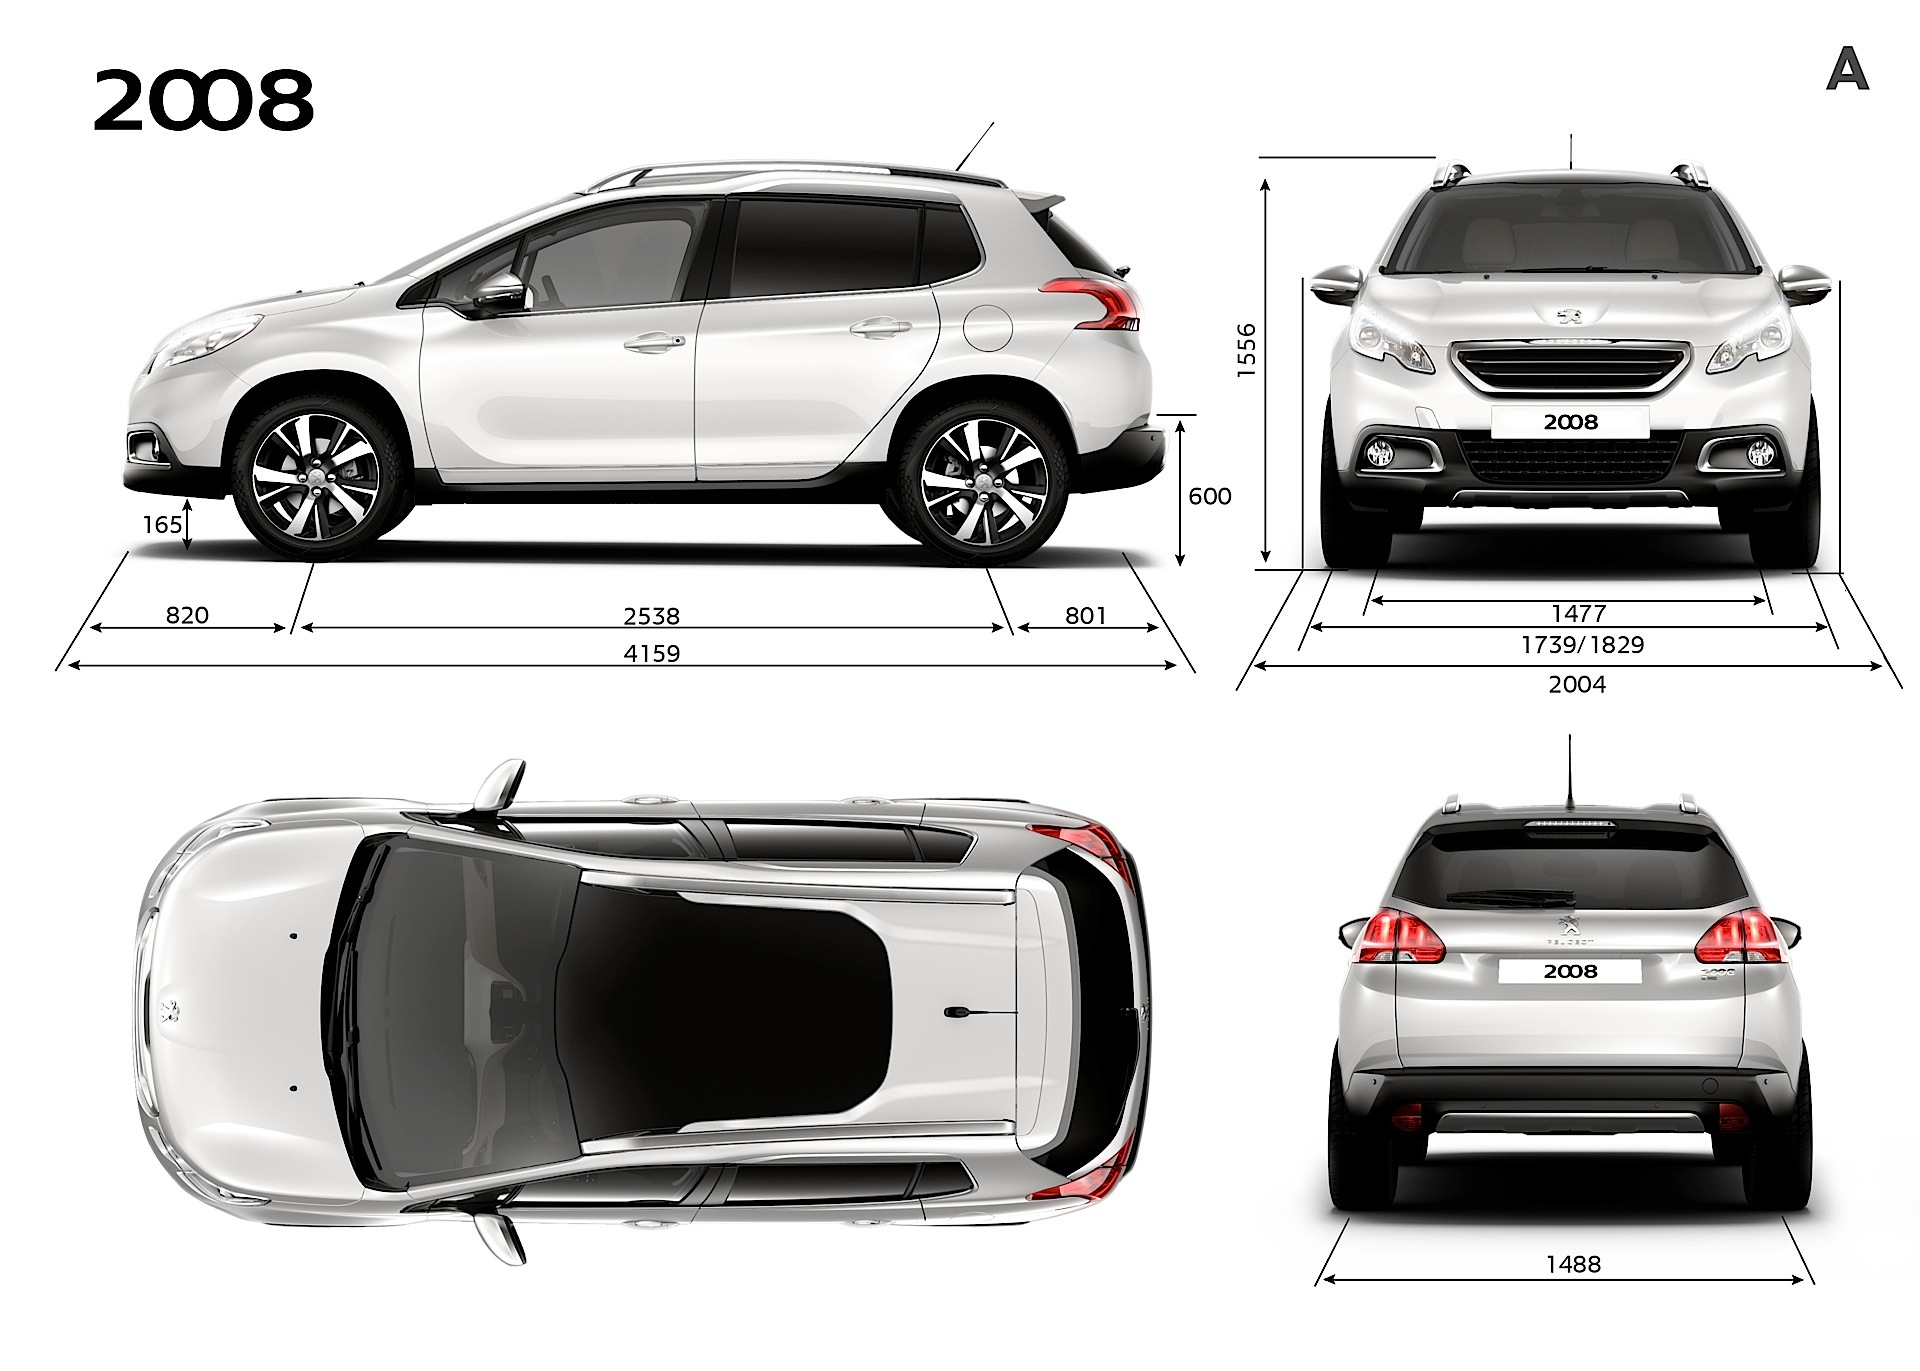 peugeot 2008 specs 2013 2014 2015 2016 autoevolution. Black Bedroom Furniture Sets. Home Design Ideas